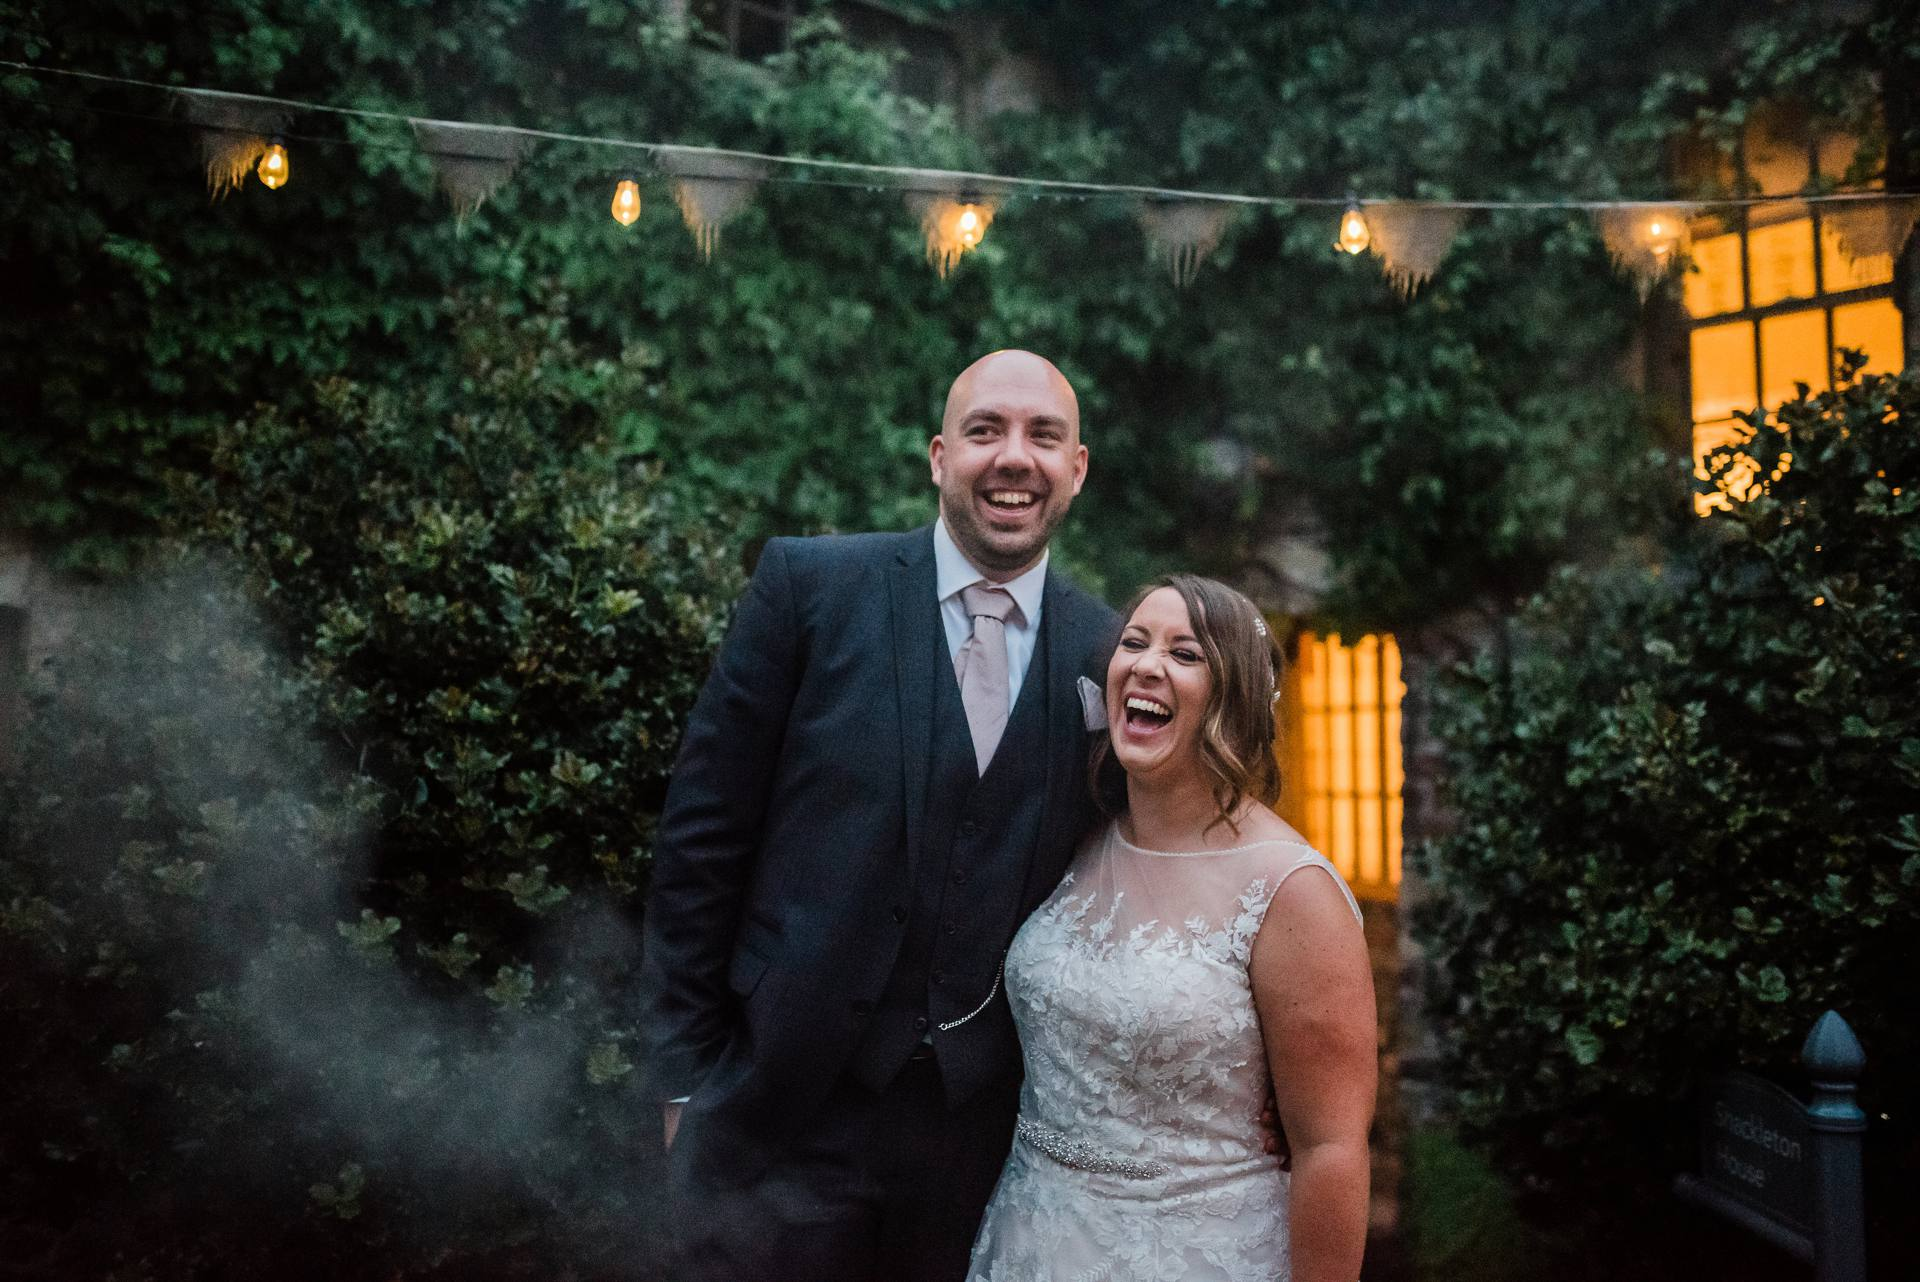 Bride and groom laughing together at night surrounded by smoke